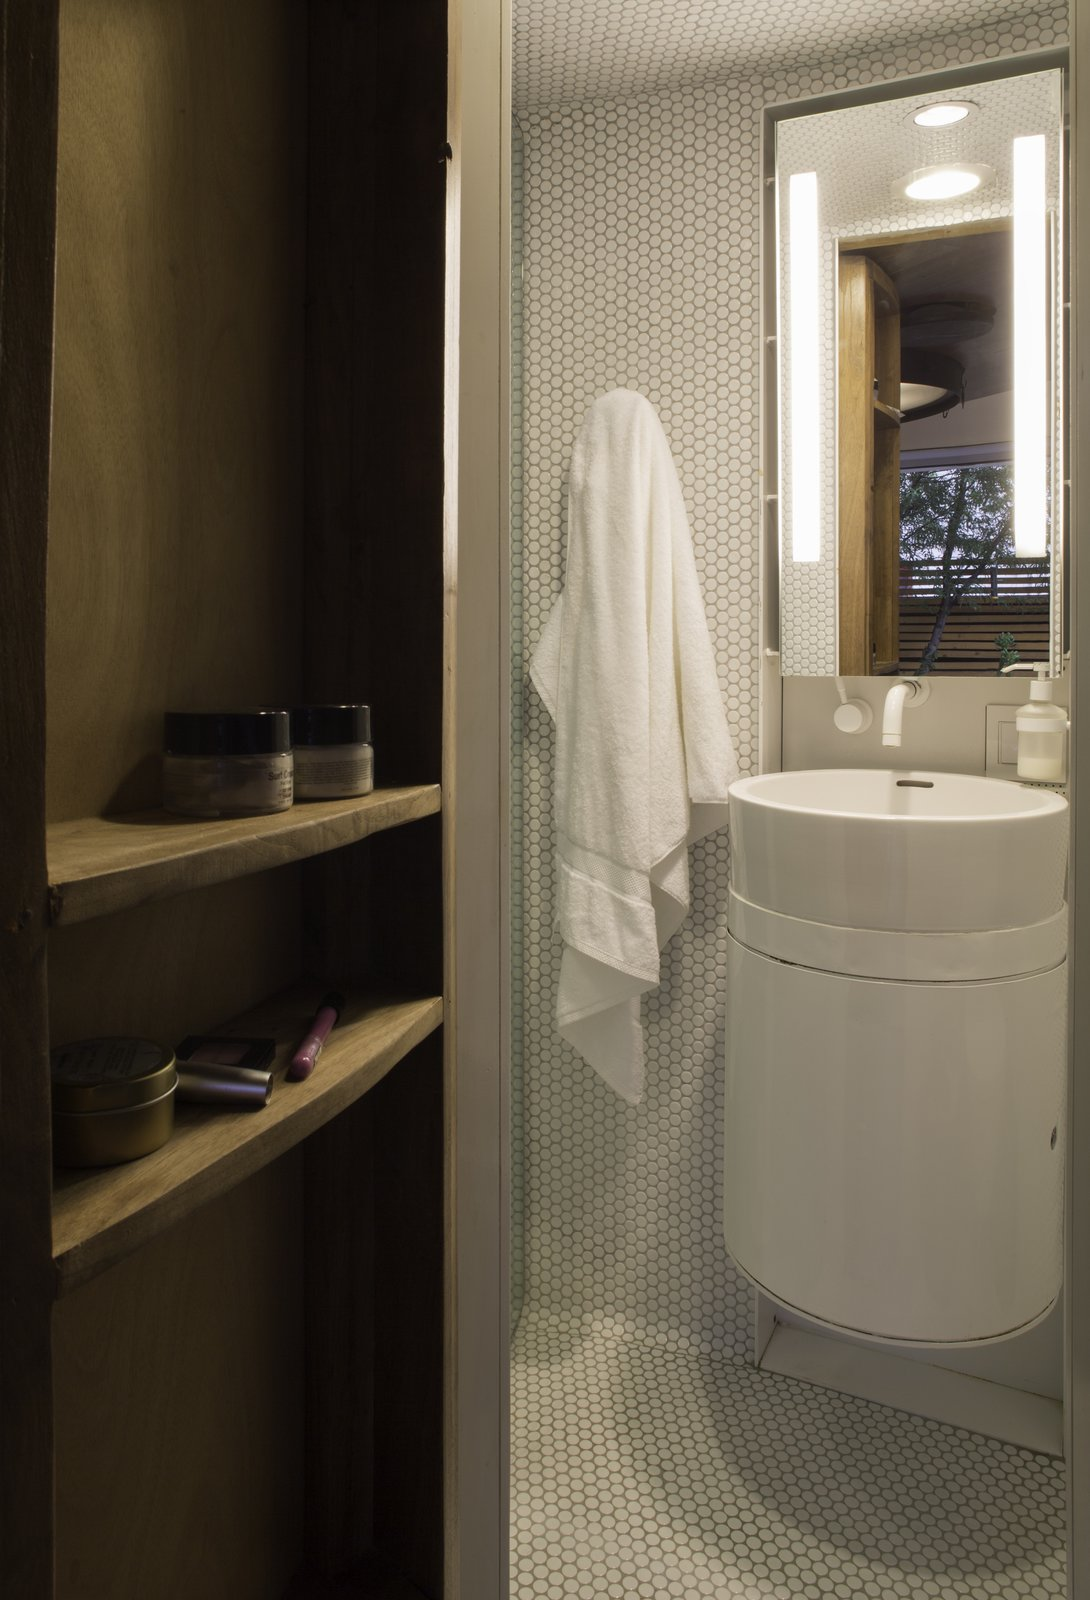 Bath, Ceiling, Vessel, Wall, and Mosaic Tile The ergonomic bath was intentionally designed with an outdoor shower to maximize square footage inside the silo house.  Best Bath Mosaic Tile Ceiling Photos from An Old Grain Silo Makes an Enchanting Tiny Home in Phoenix